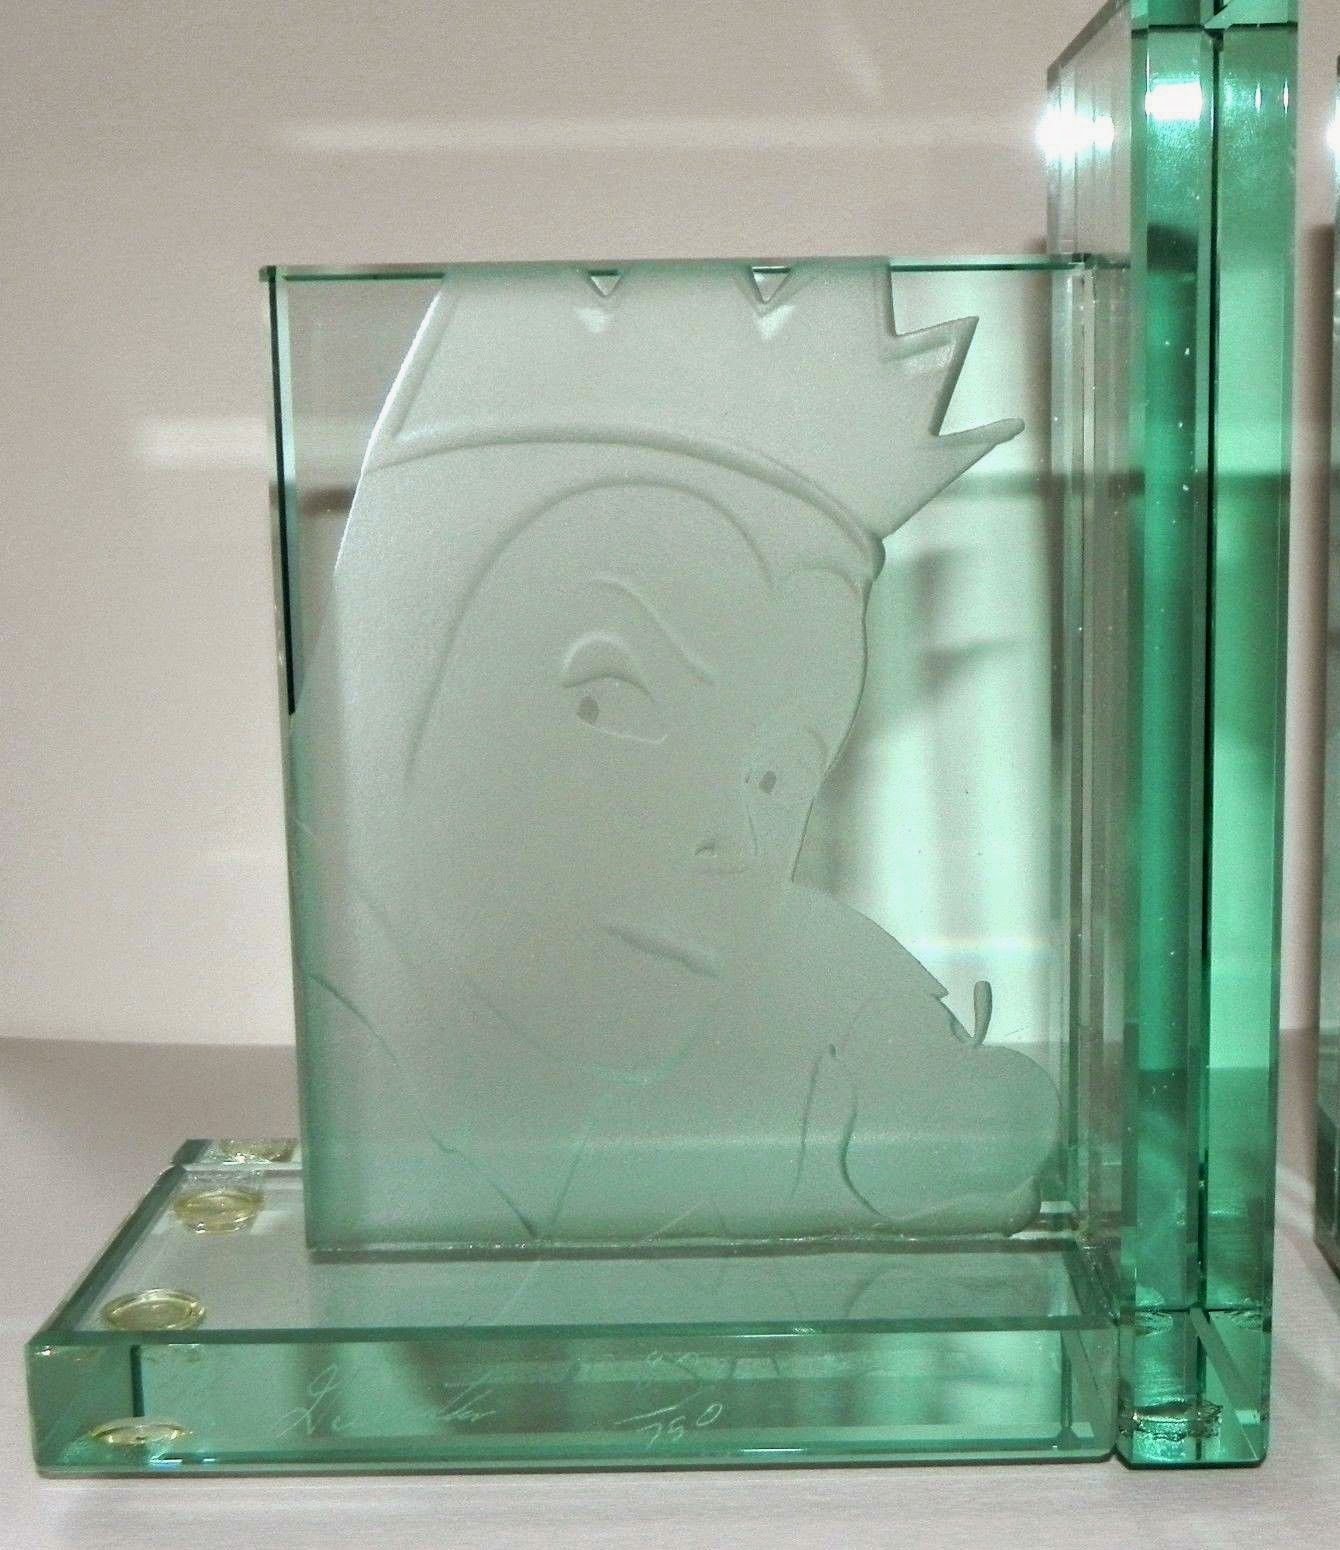 Filmic Light - Snow White Archive: Robert Guenther Etched Glass ...